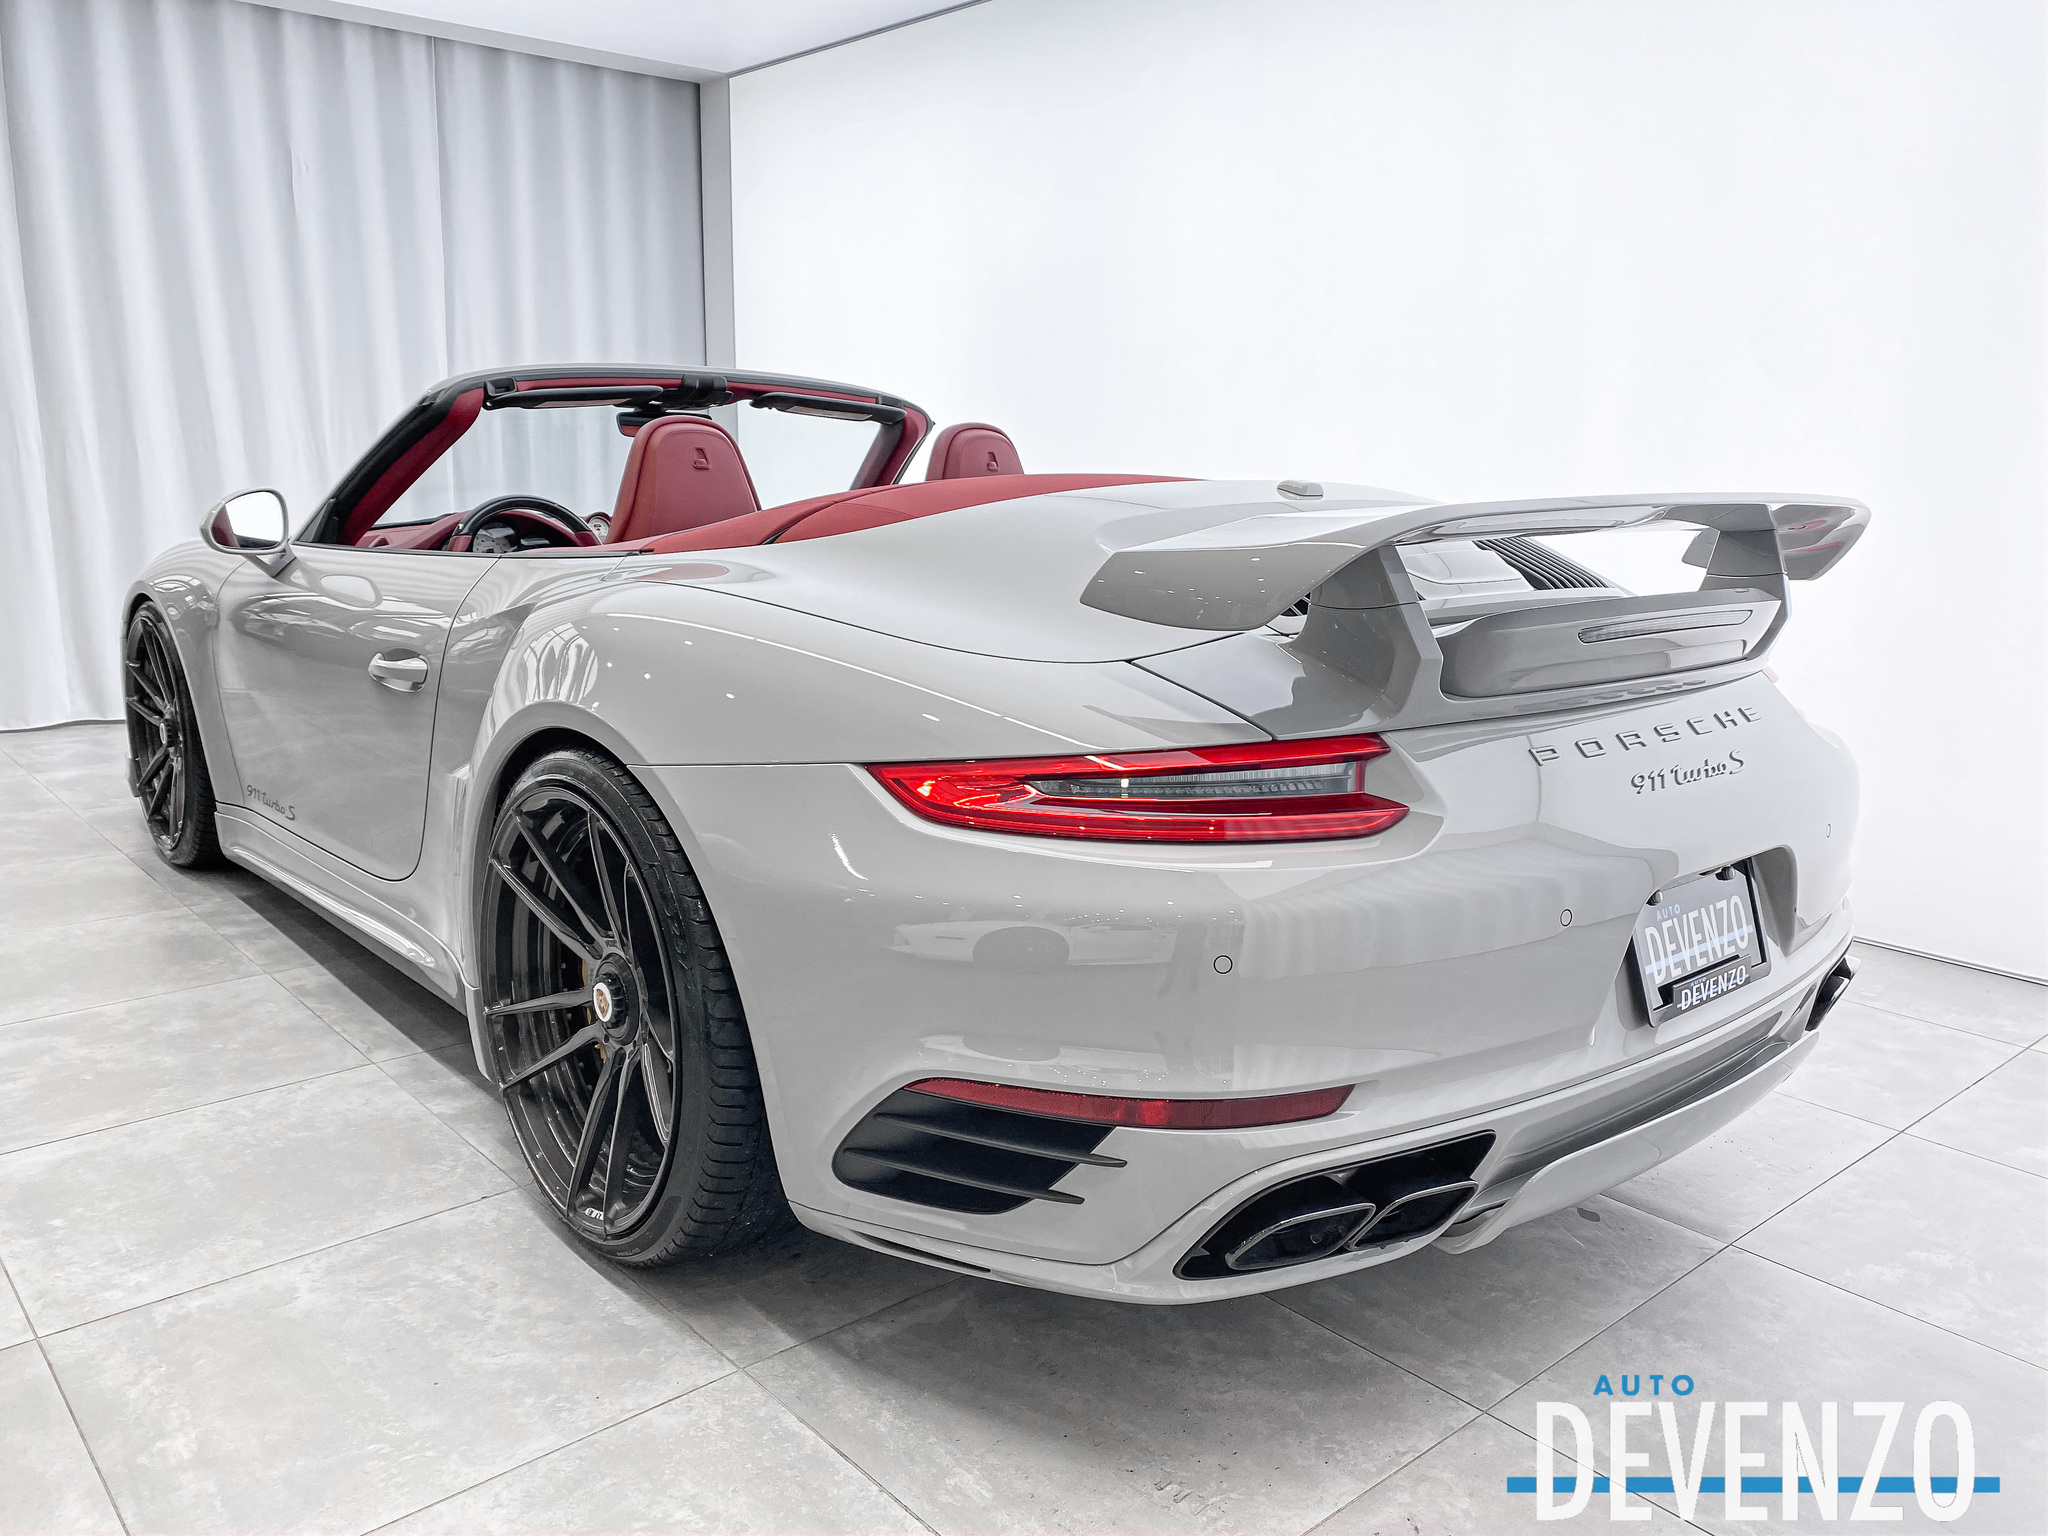 2019 Porsche 911 Turbo S Cabriolet 580HP TECHART DESIGN complet